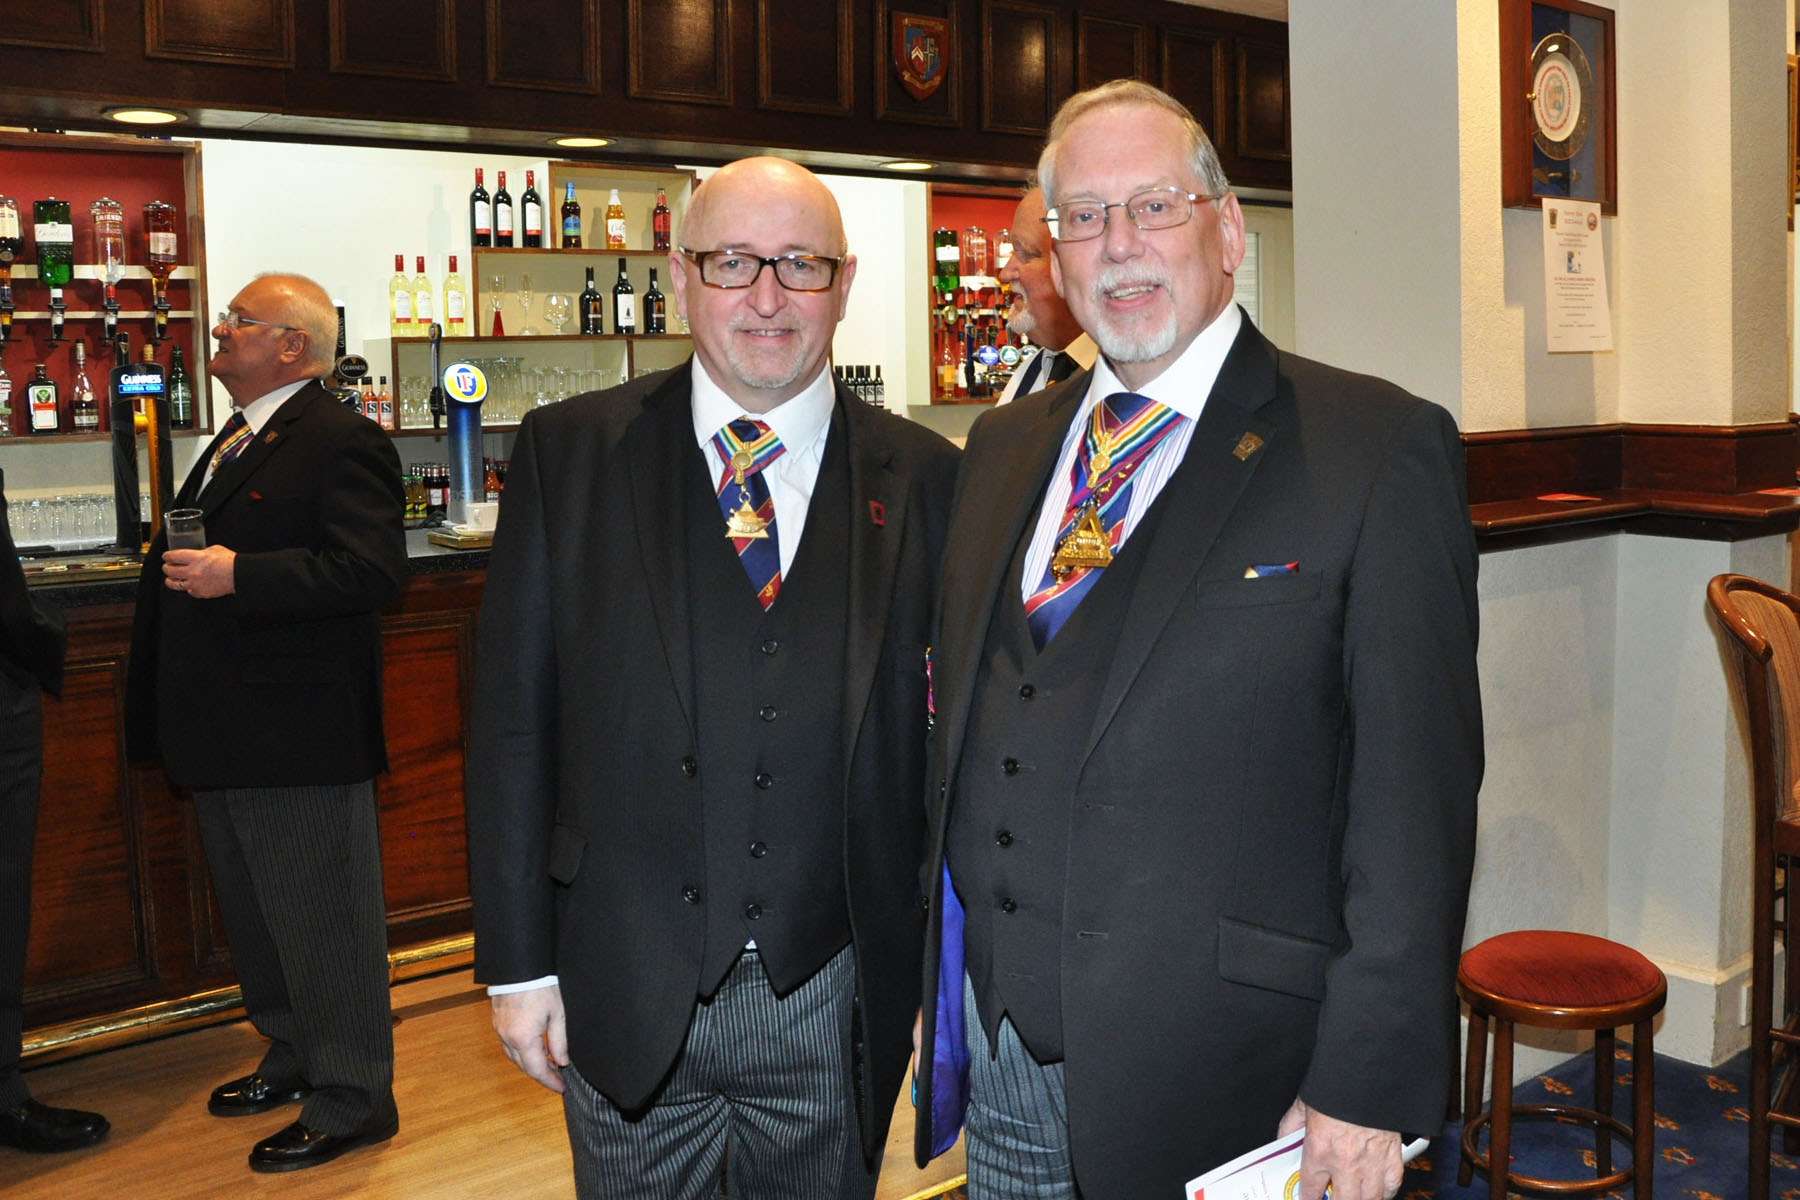 The 2017 Annual Meeting of Provincial Grand Lodge